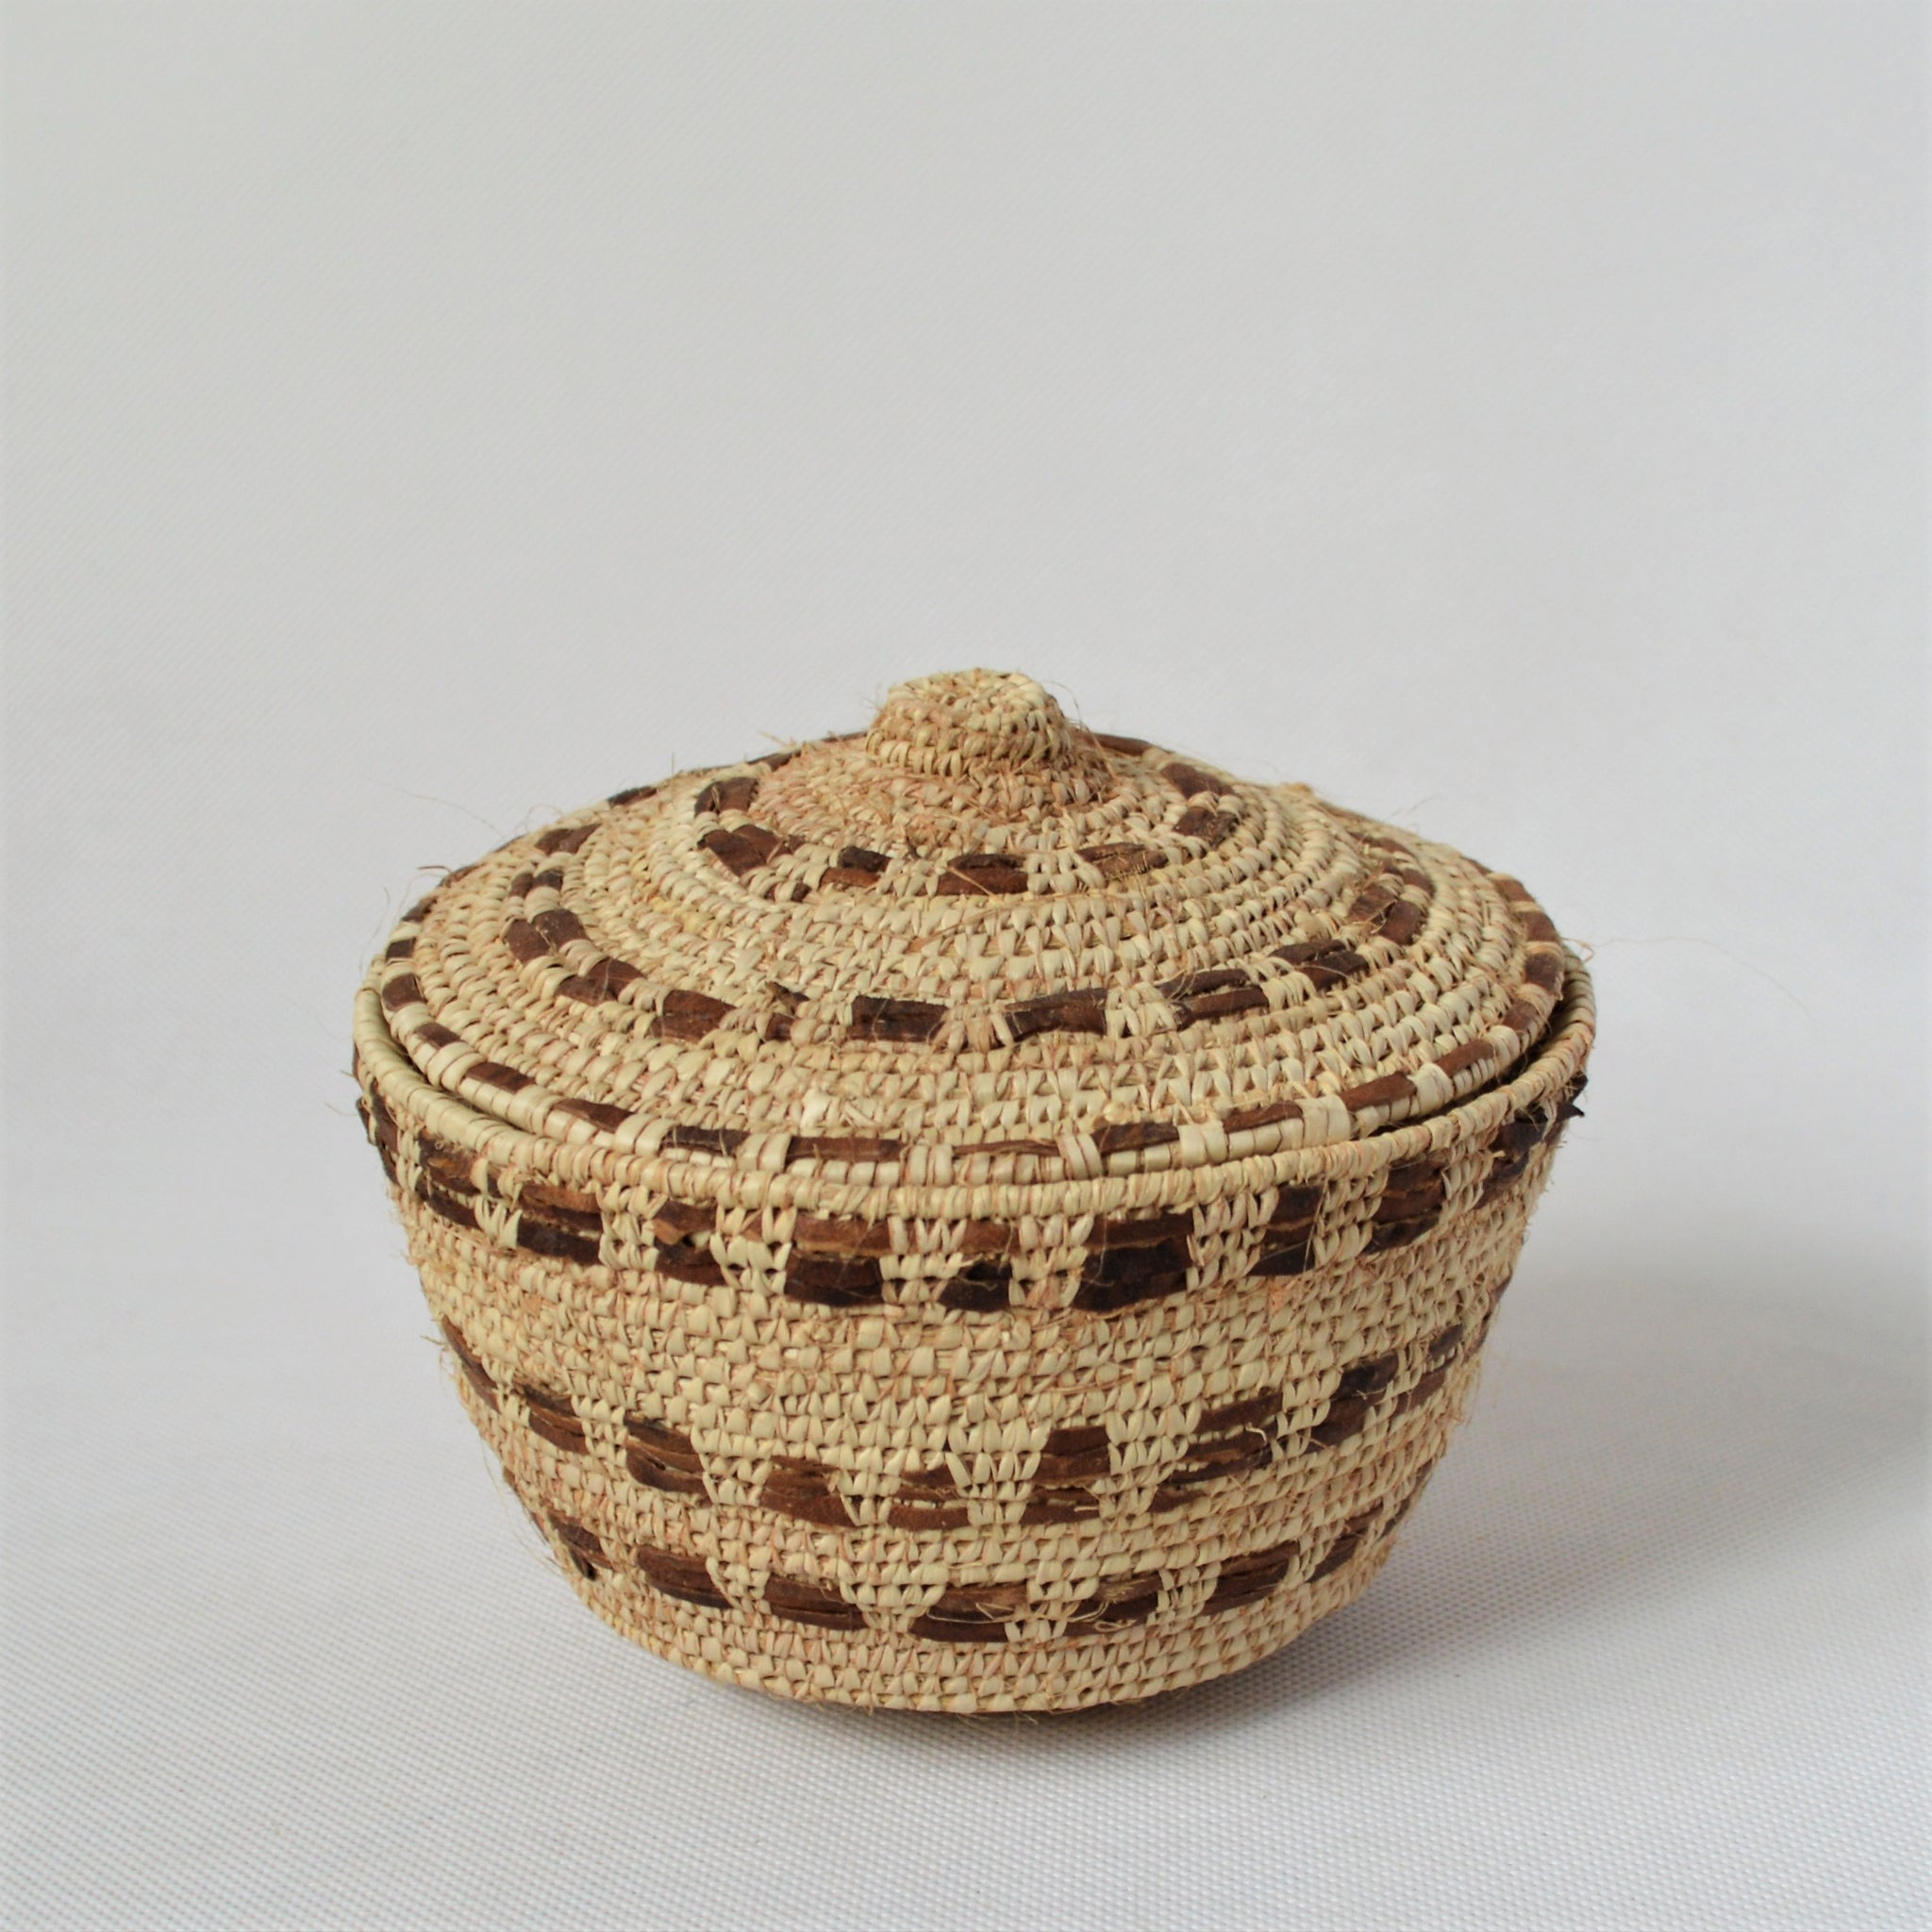 Woven sewing box / jewelry box decorated with natural leather